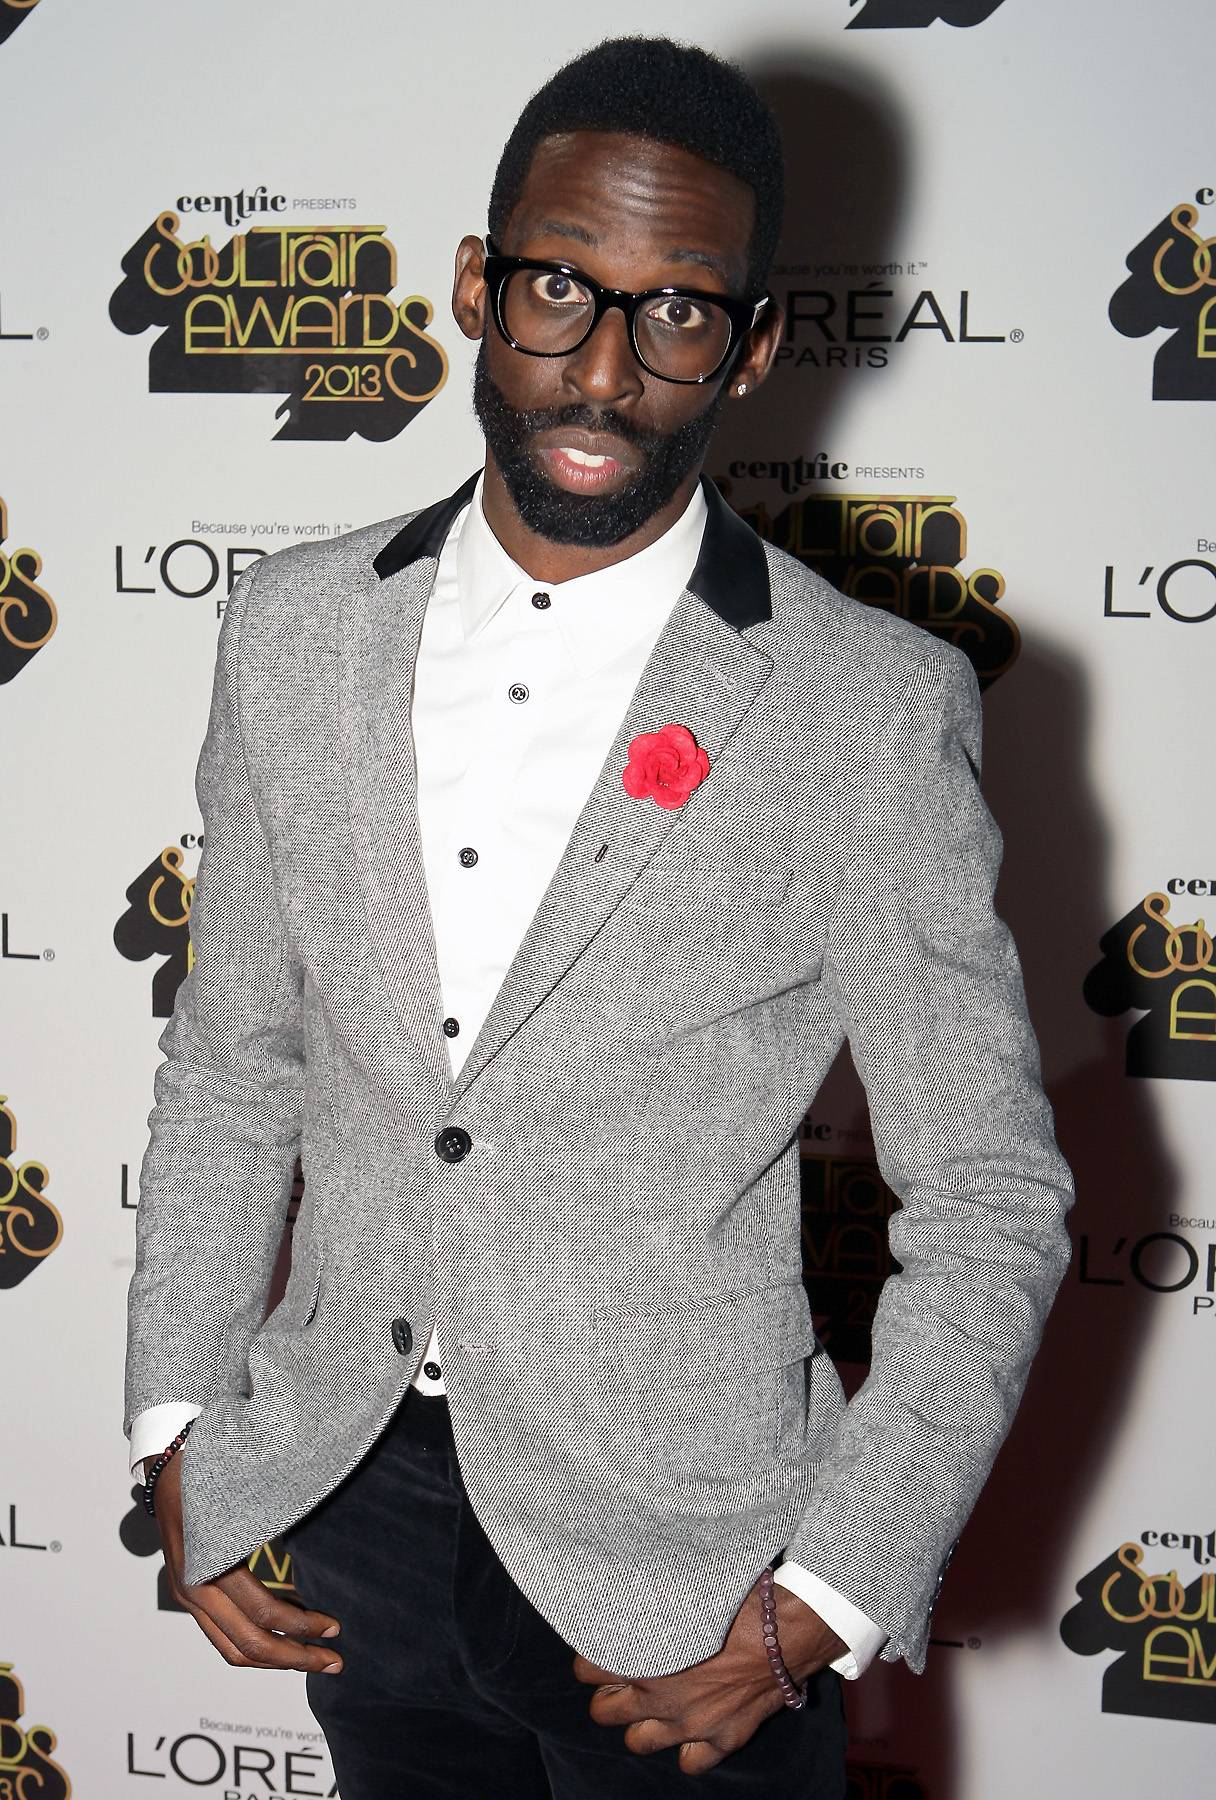 Best Gospel/Inspirational Performance ? Tye Tribbett ?If He Did It Before?Same God? - Tye Tribbett's win is a huge inspiration for all! For gospel fans everywhere, a touch of soulful recognition goes a long way.(Photo: Leon Bennett/BET/Getty Images for BET)